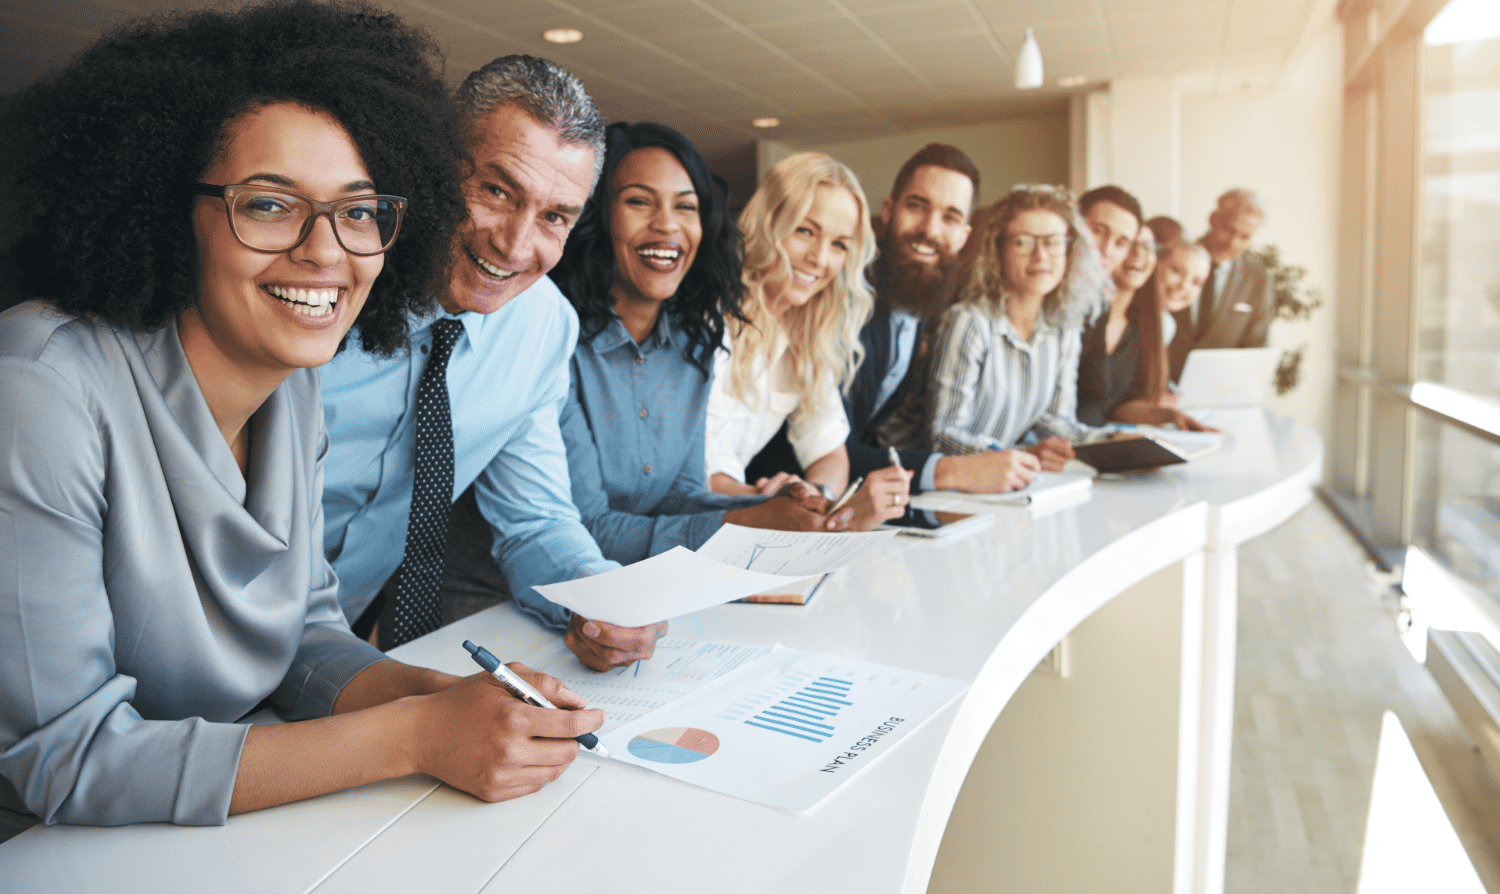 Connecting with Employees at a Time of Unprecedented Change: Preparation, Adaptation and Empathy by Scott Frisch, Executive Vice President & Chief Operating Officer, AARP